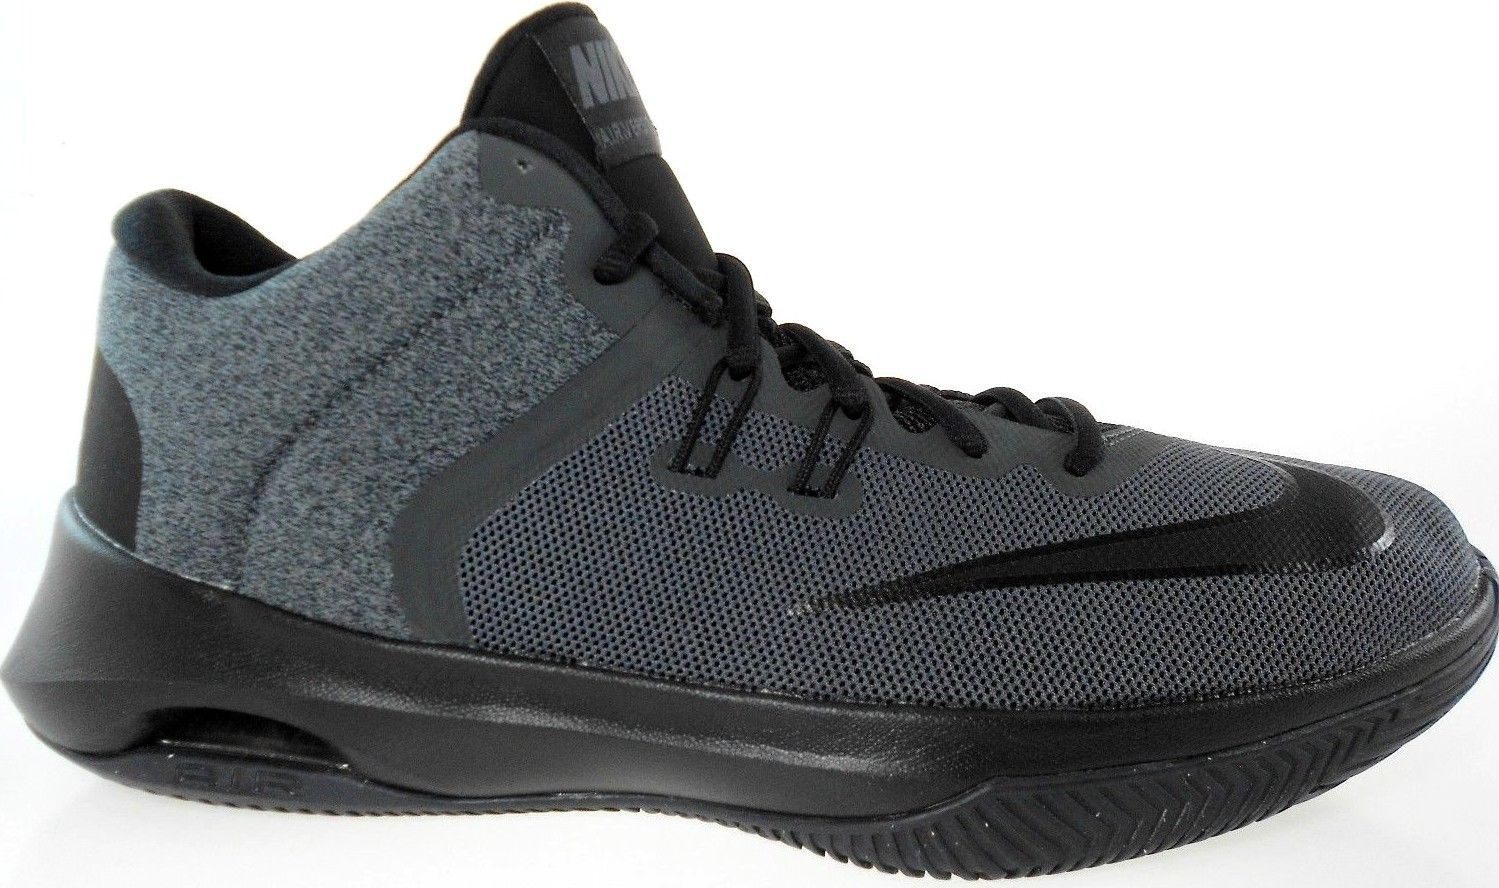 hot sale online efee9 3315f NIKE AIR VERSITILE II NBK MEN S ANTHRACITE BLACK SHOES  AA3819-001